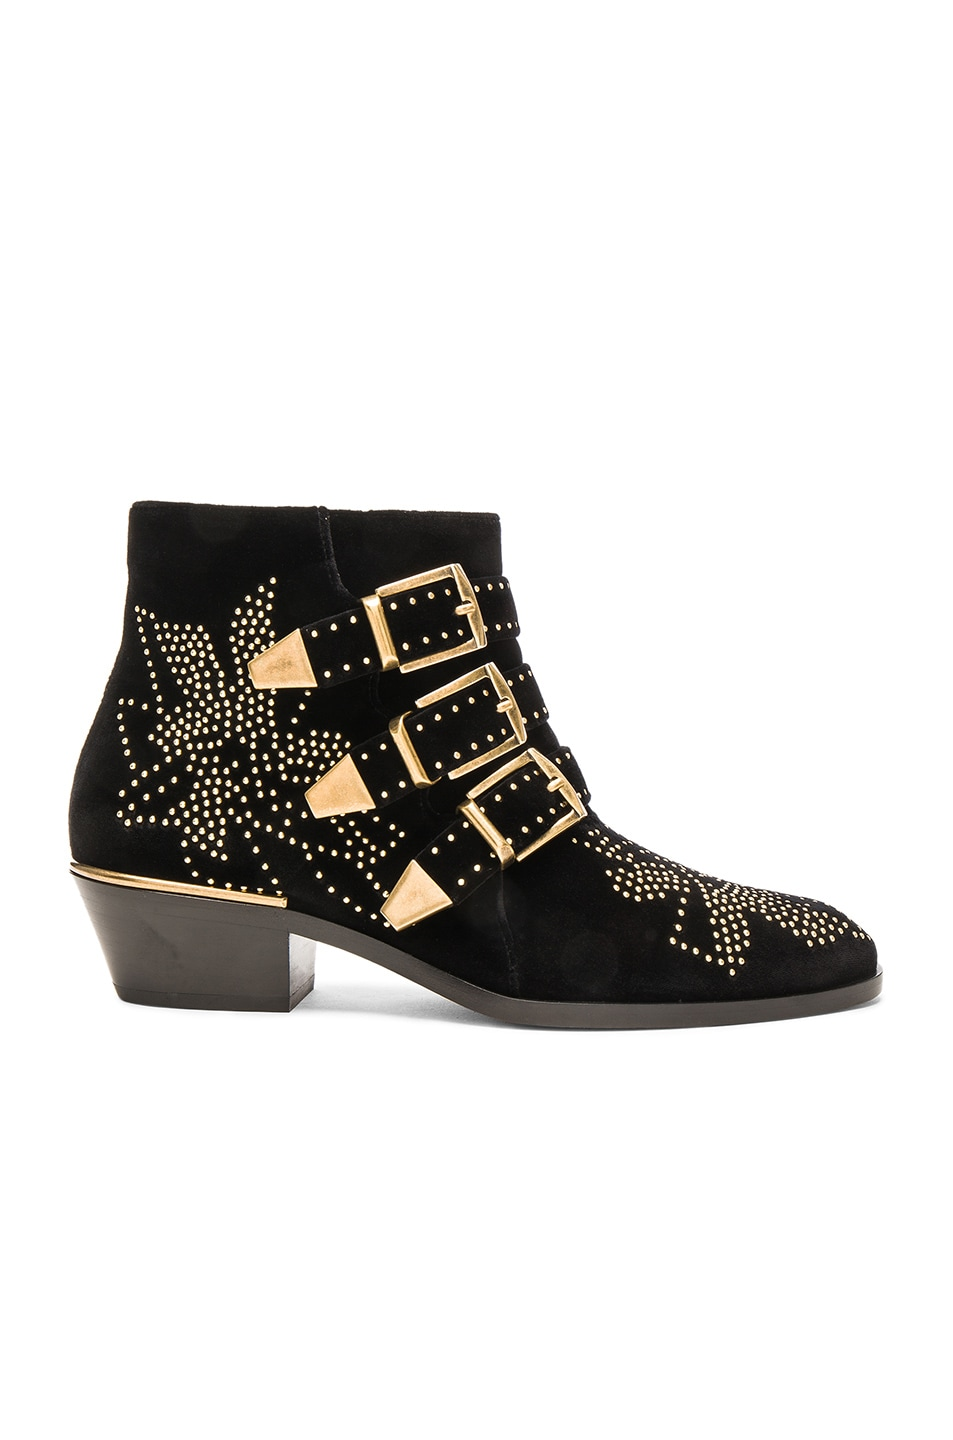 Image 1 of Chloe Velvet Susanna Booties in Black